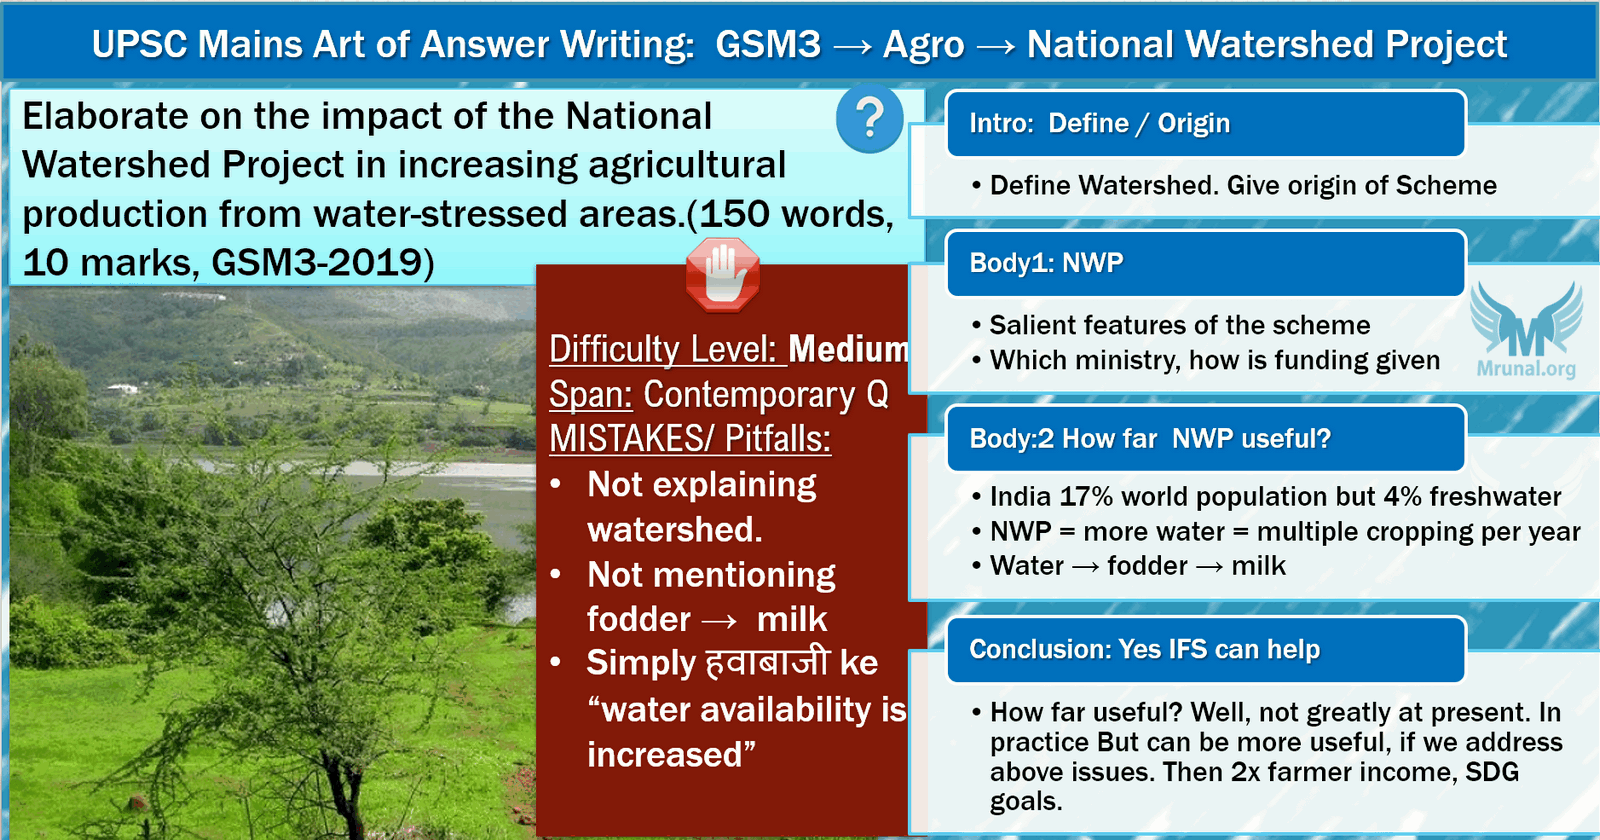 UPSC Mains Model Answer Writing Framework for National Watershed Project Question